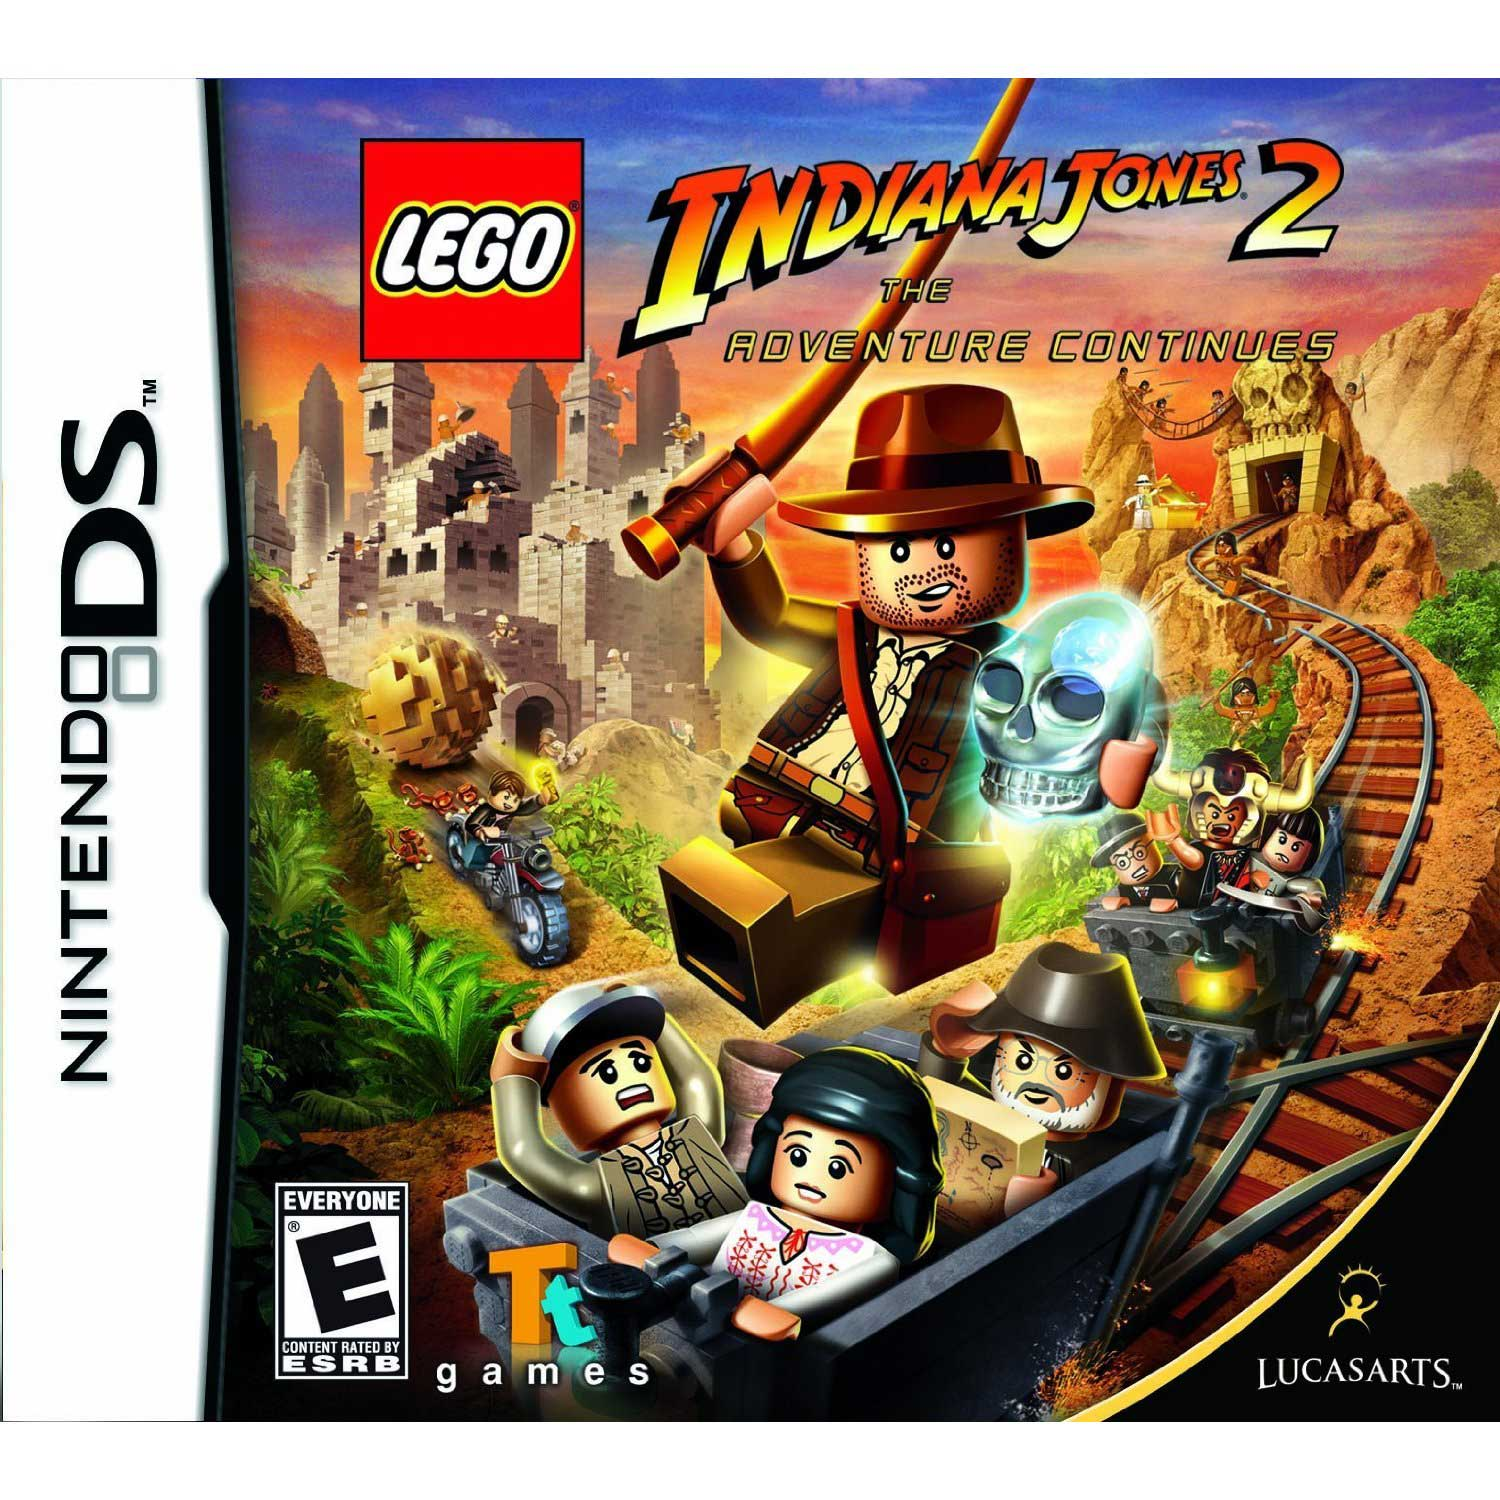 Lego Indiana Jones 2 The Adventure Continues/DS